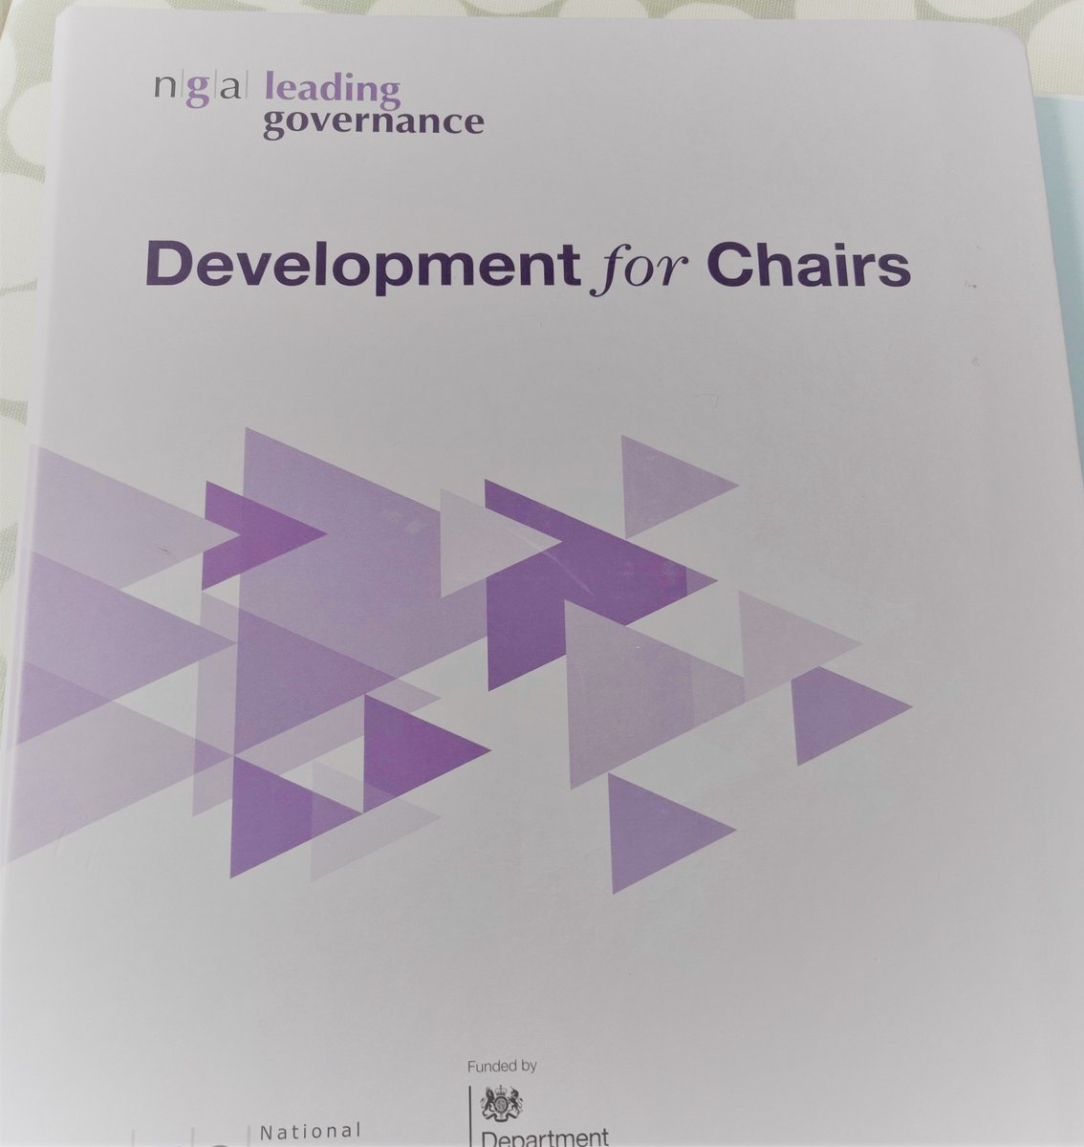 An image of a Development for Chairs folder